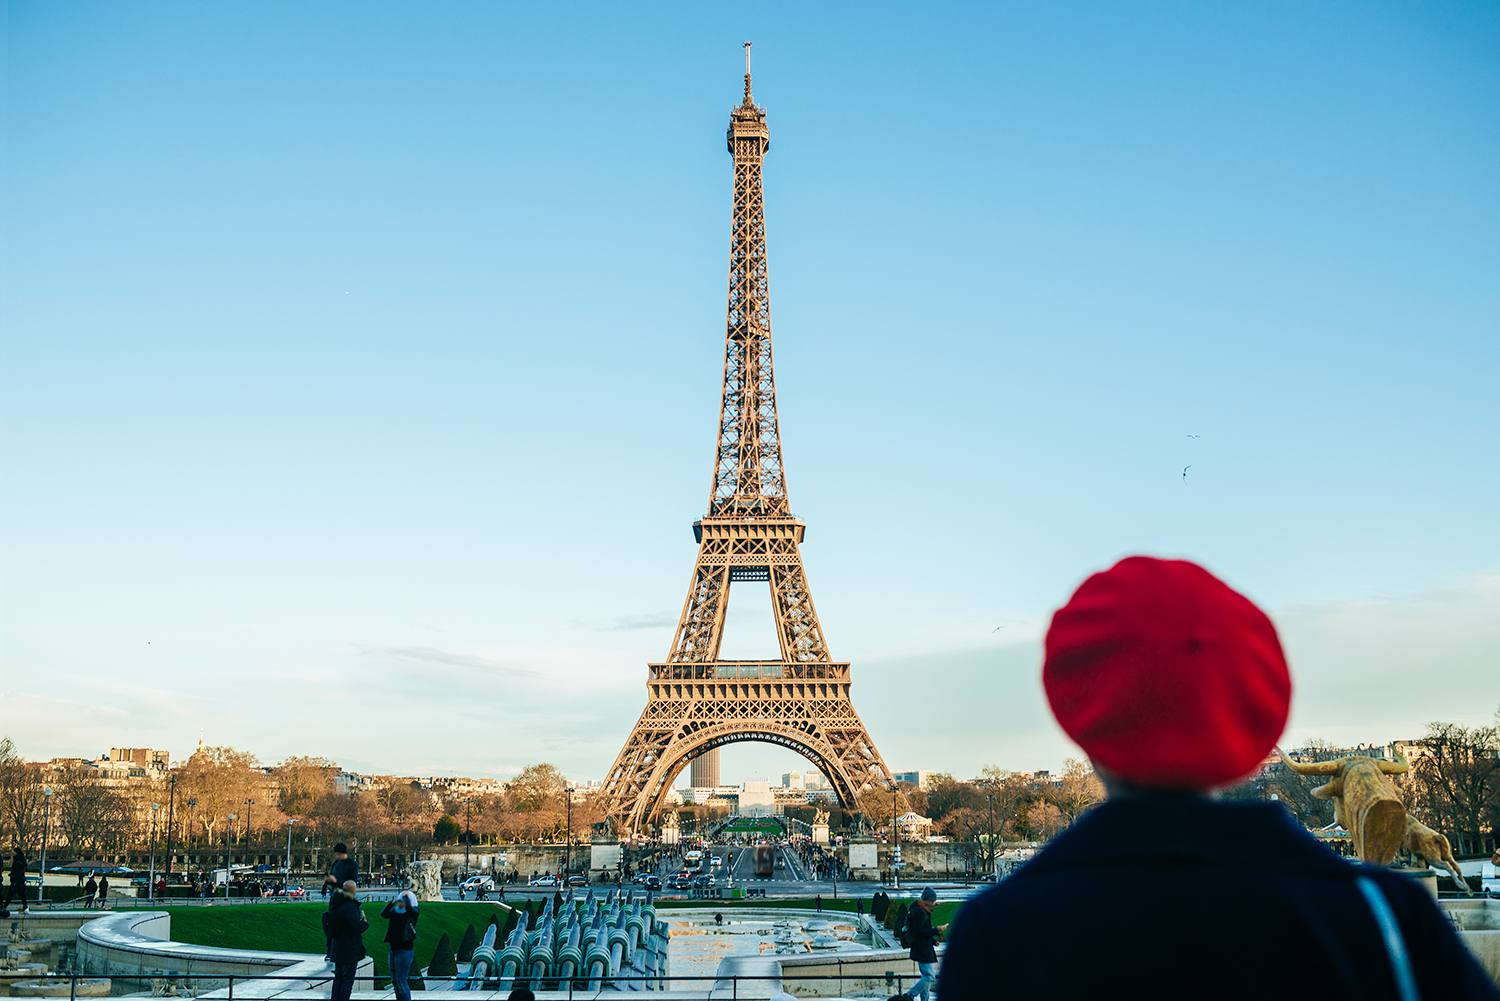 View of Eiffel Tower with back view of young woman standing in the foreground